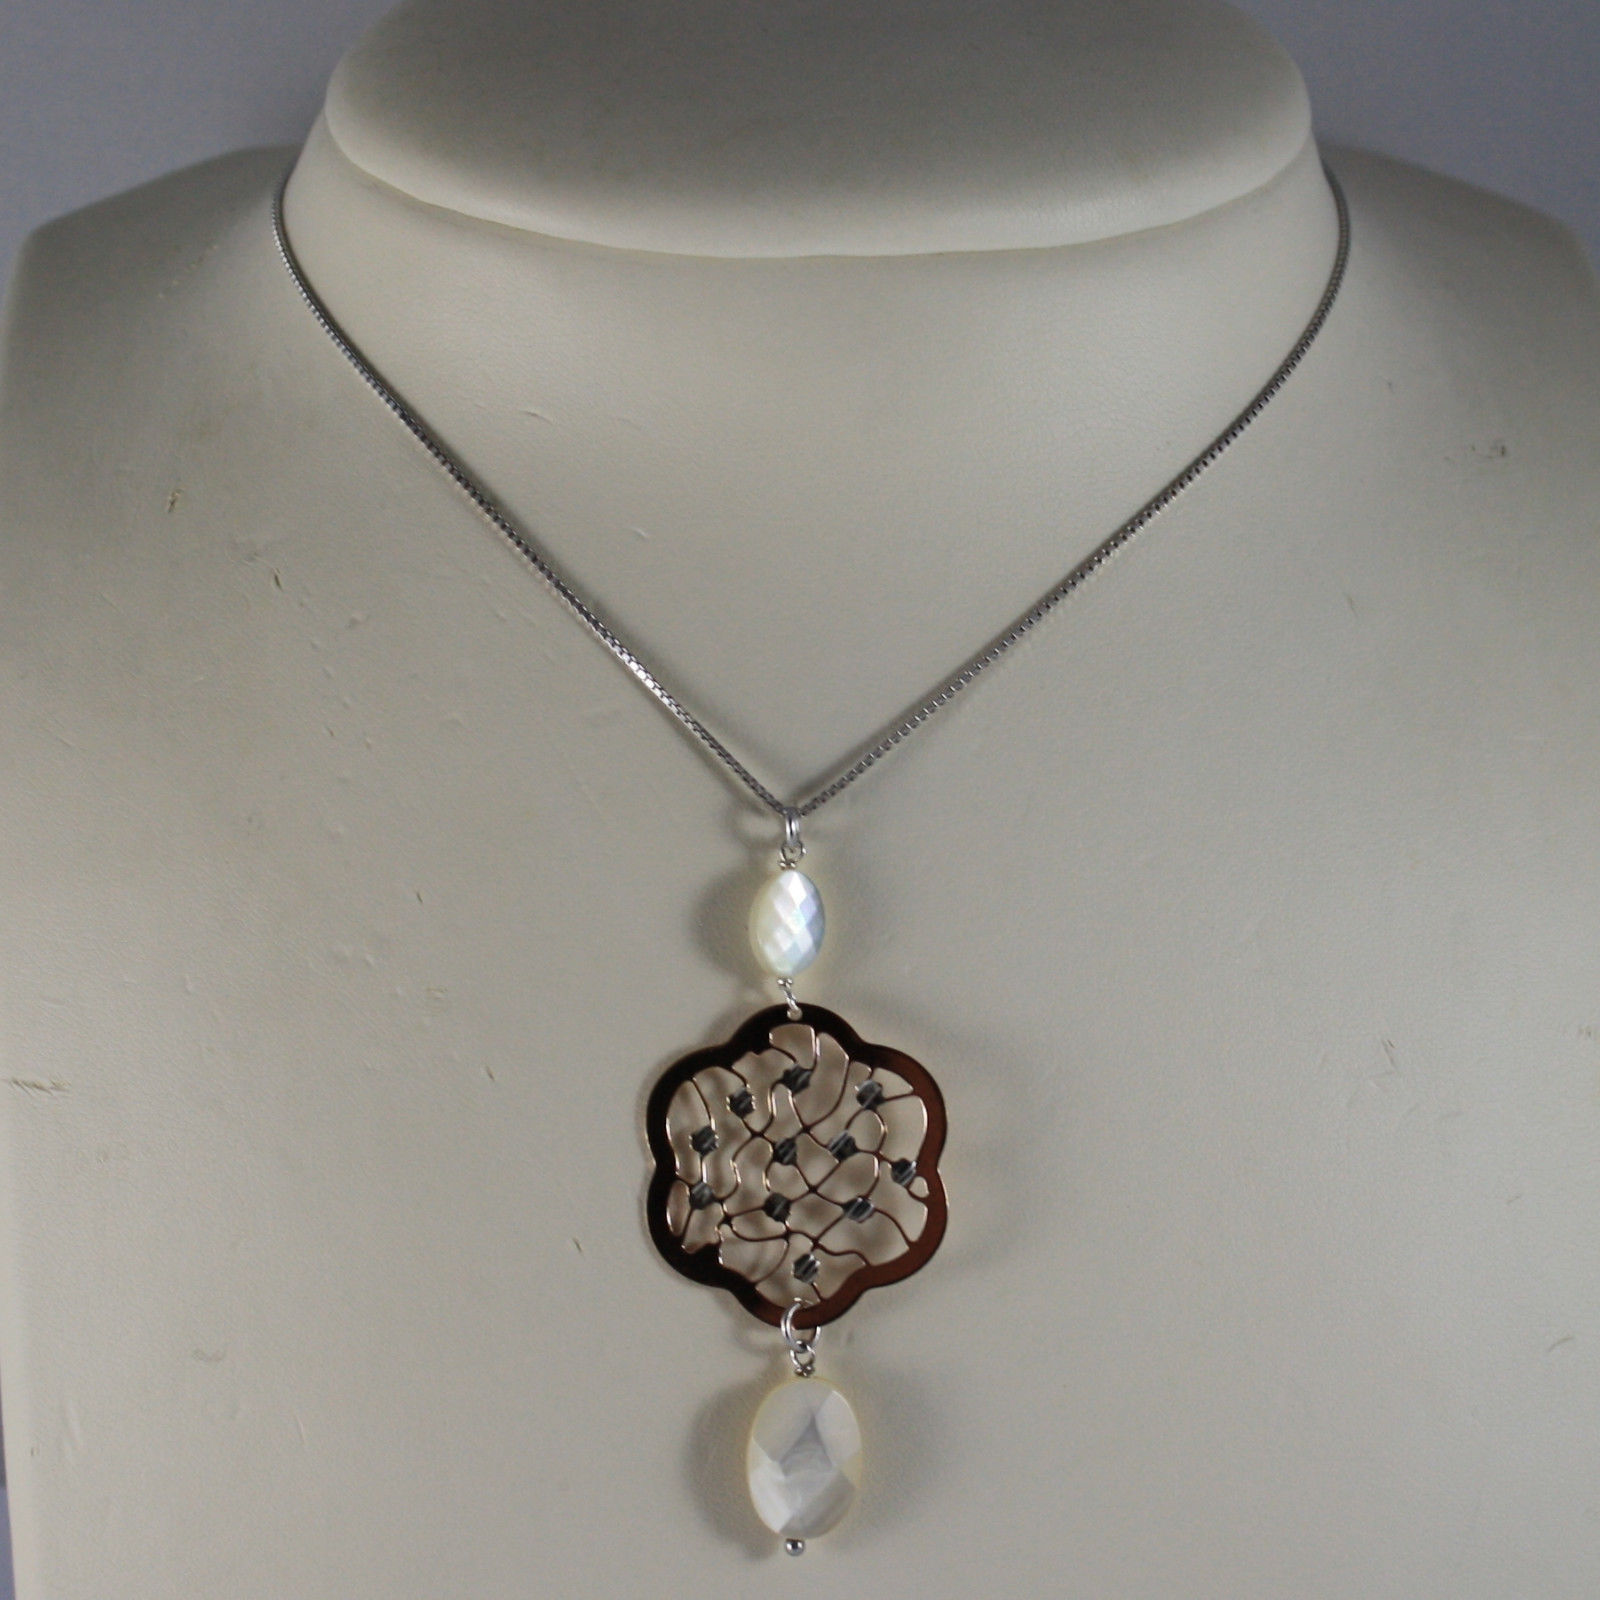 .925 RHODIUM SILVER NECKLACE WITH PENDANT ROSE GOLD PLATED AND MOTHER OF PEARL